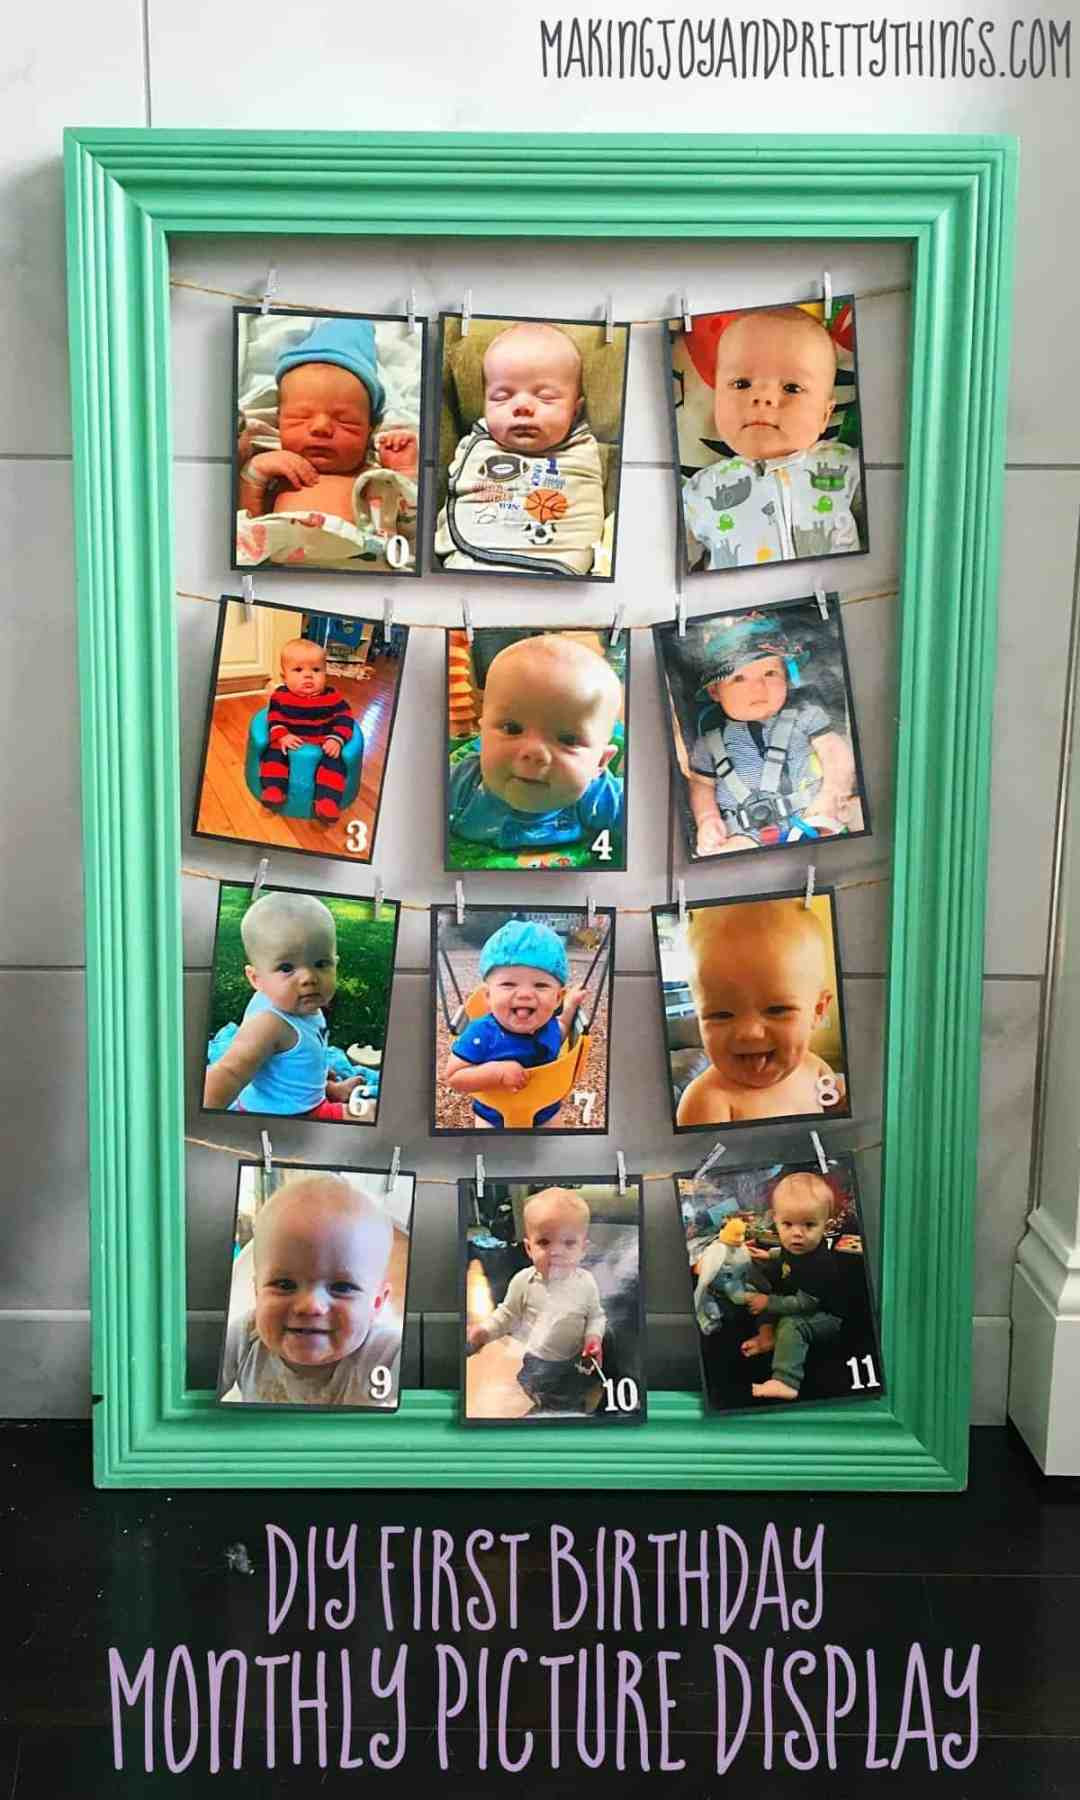 DIY Month By Picture Display Perfect For 1st Birthday Parties Easy Craft